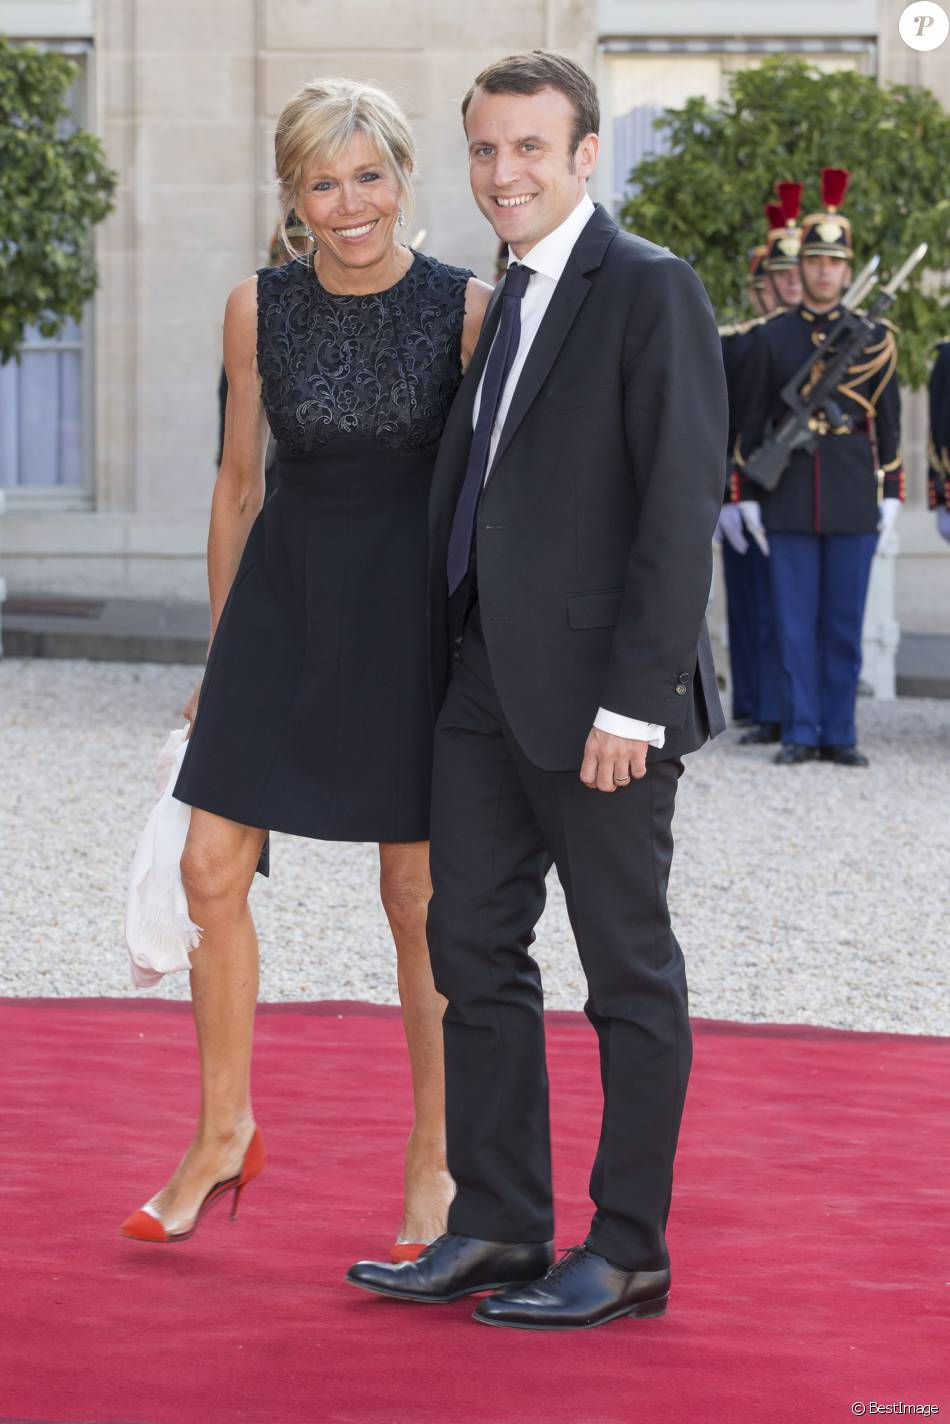 emmanuel macron et sa femme brigitte trogneux le couple royal espagnol est re u par le. Black Bedroom Furniture Sets. Home Design Ideas